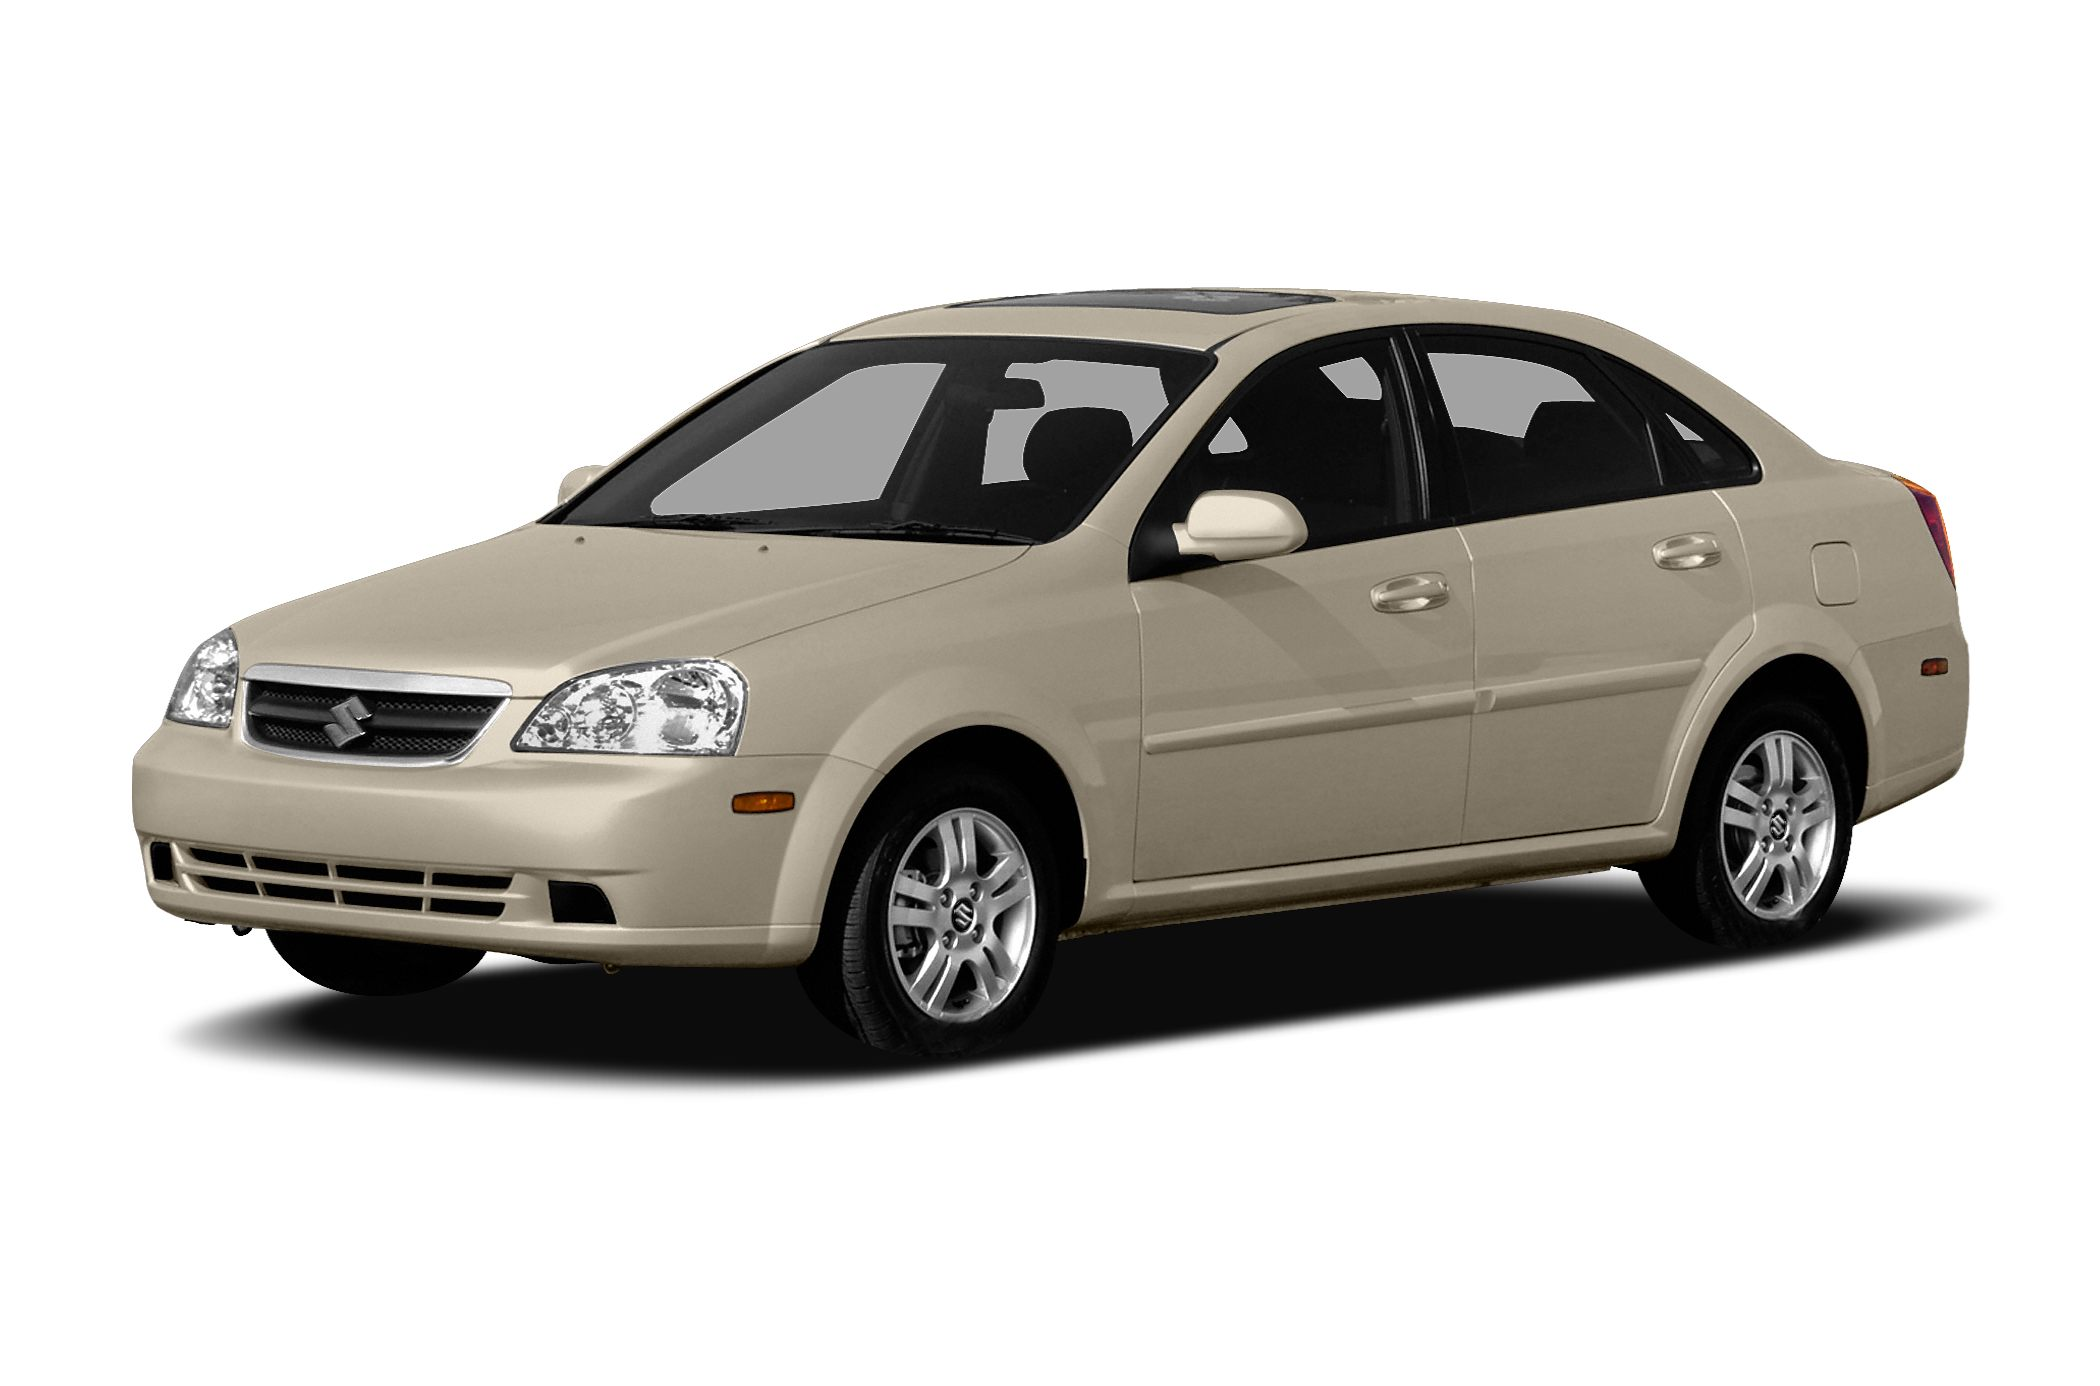 2007 Suzuki Forenza Sedan for sale in Rock Hill for $6,900 with 98,477 miles